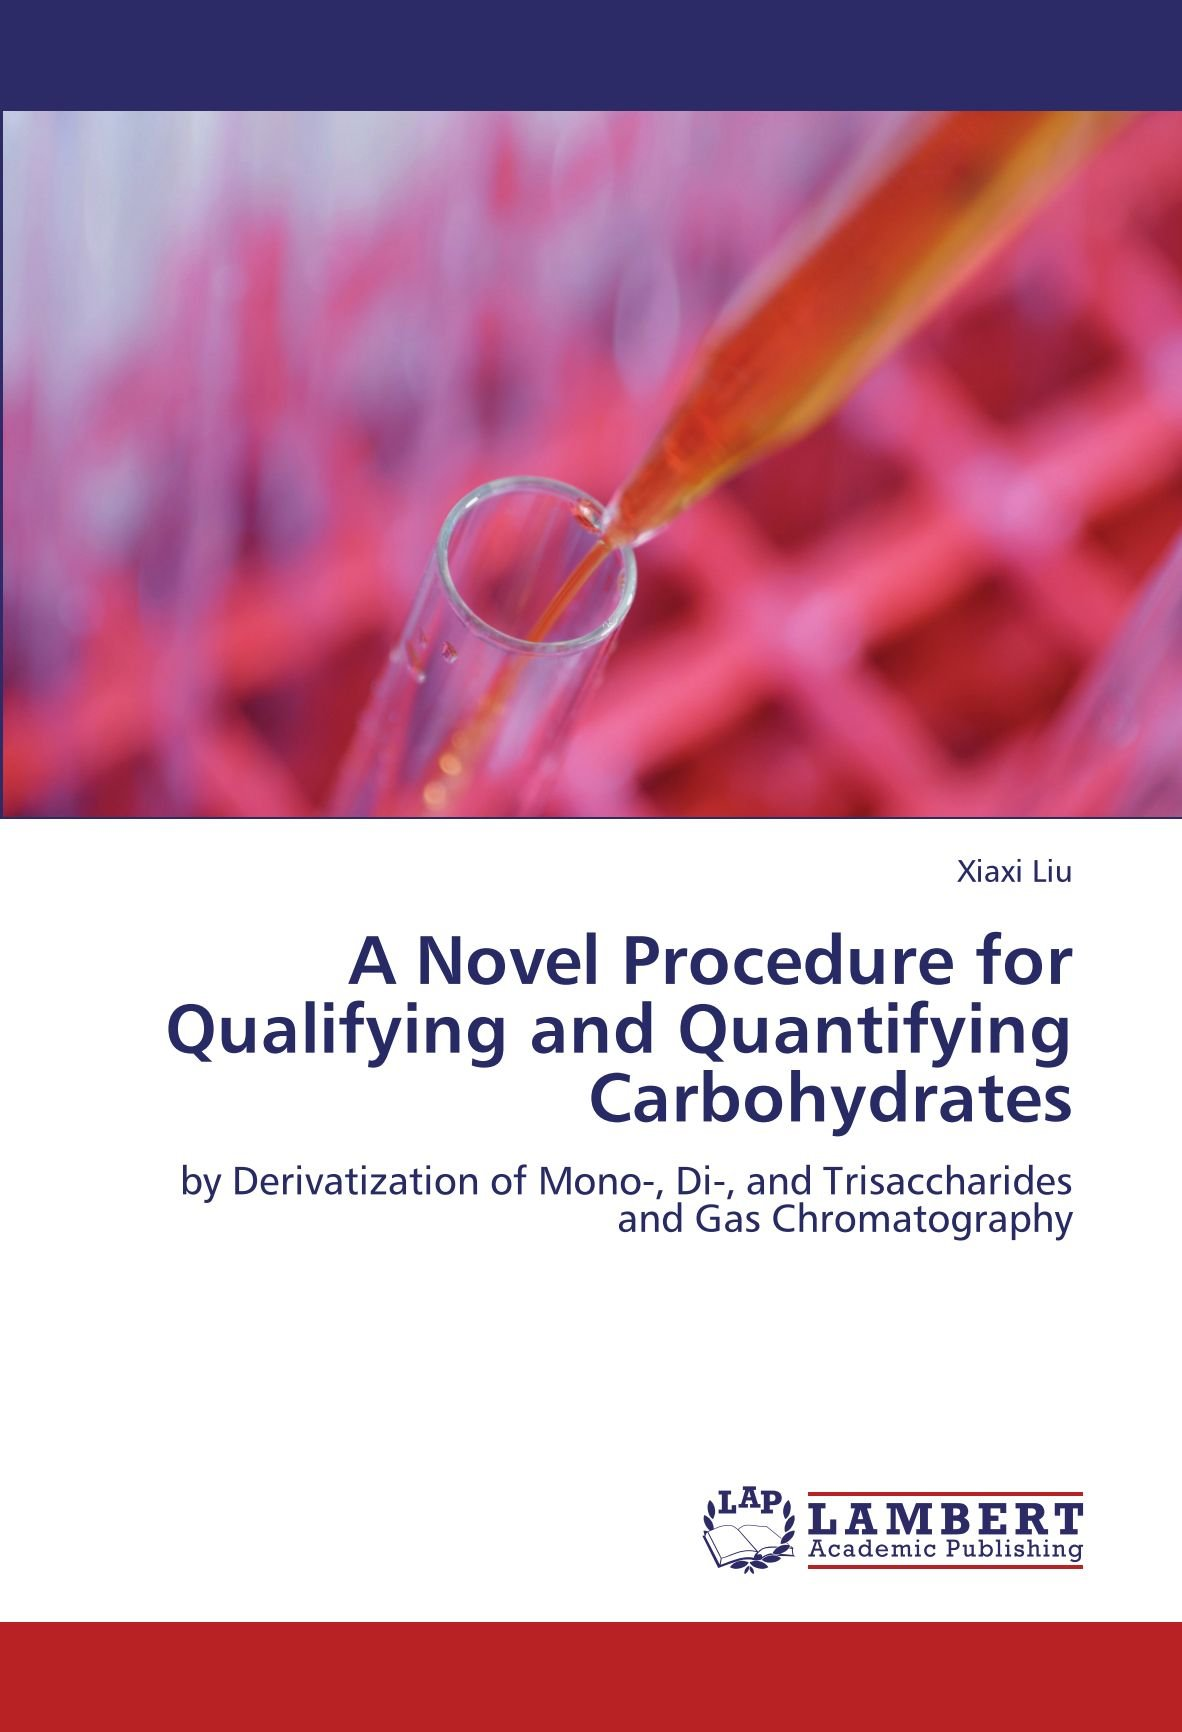 A Novel Procedure for Qualifying and Quantifying